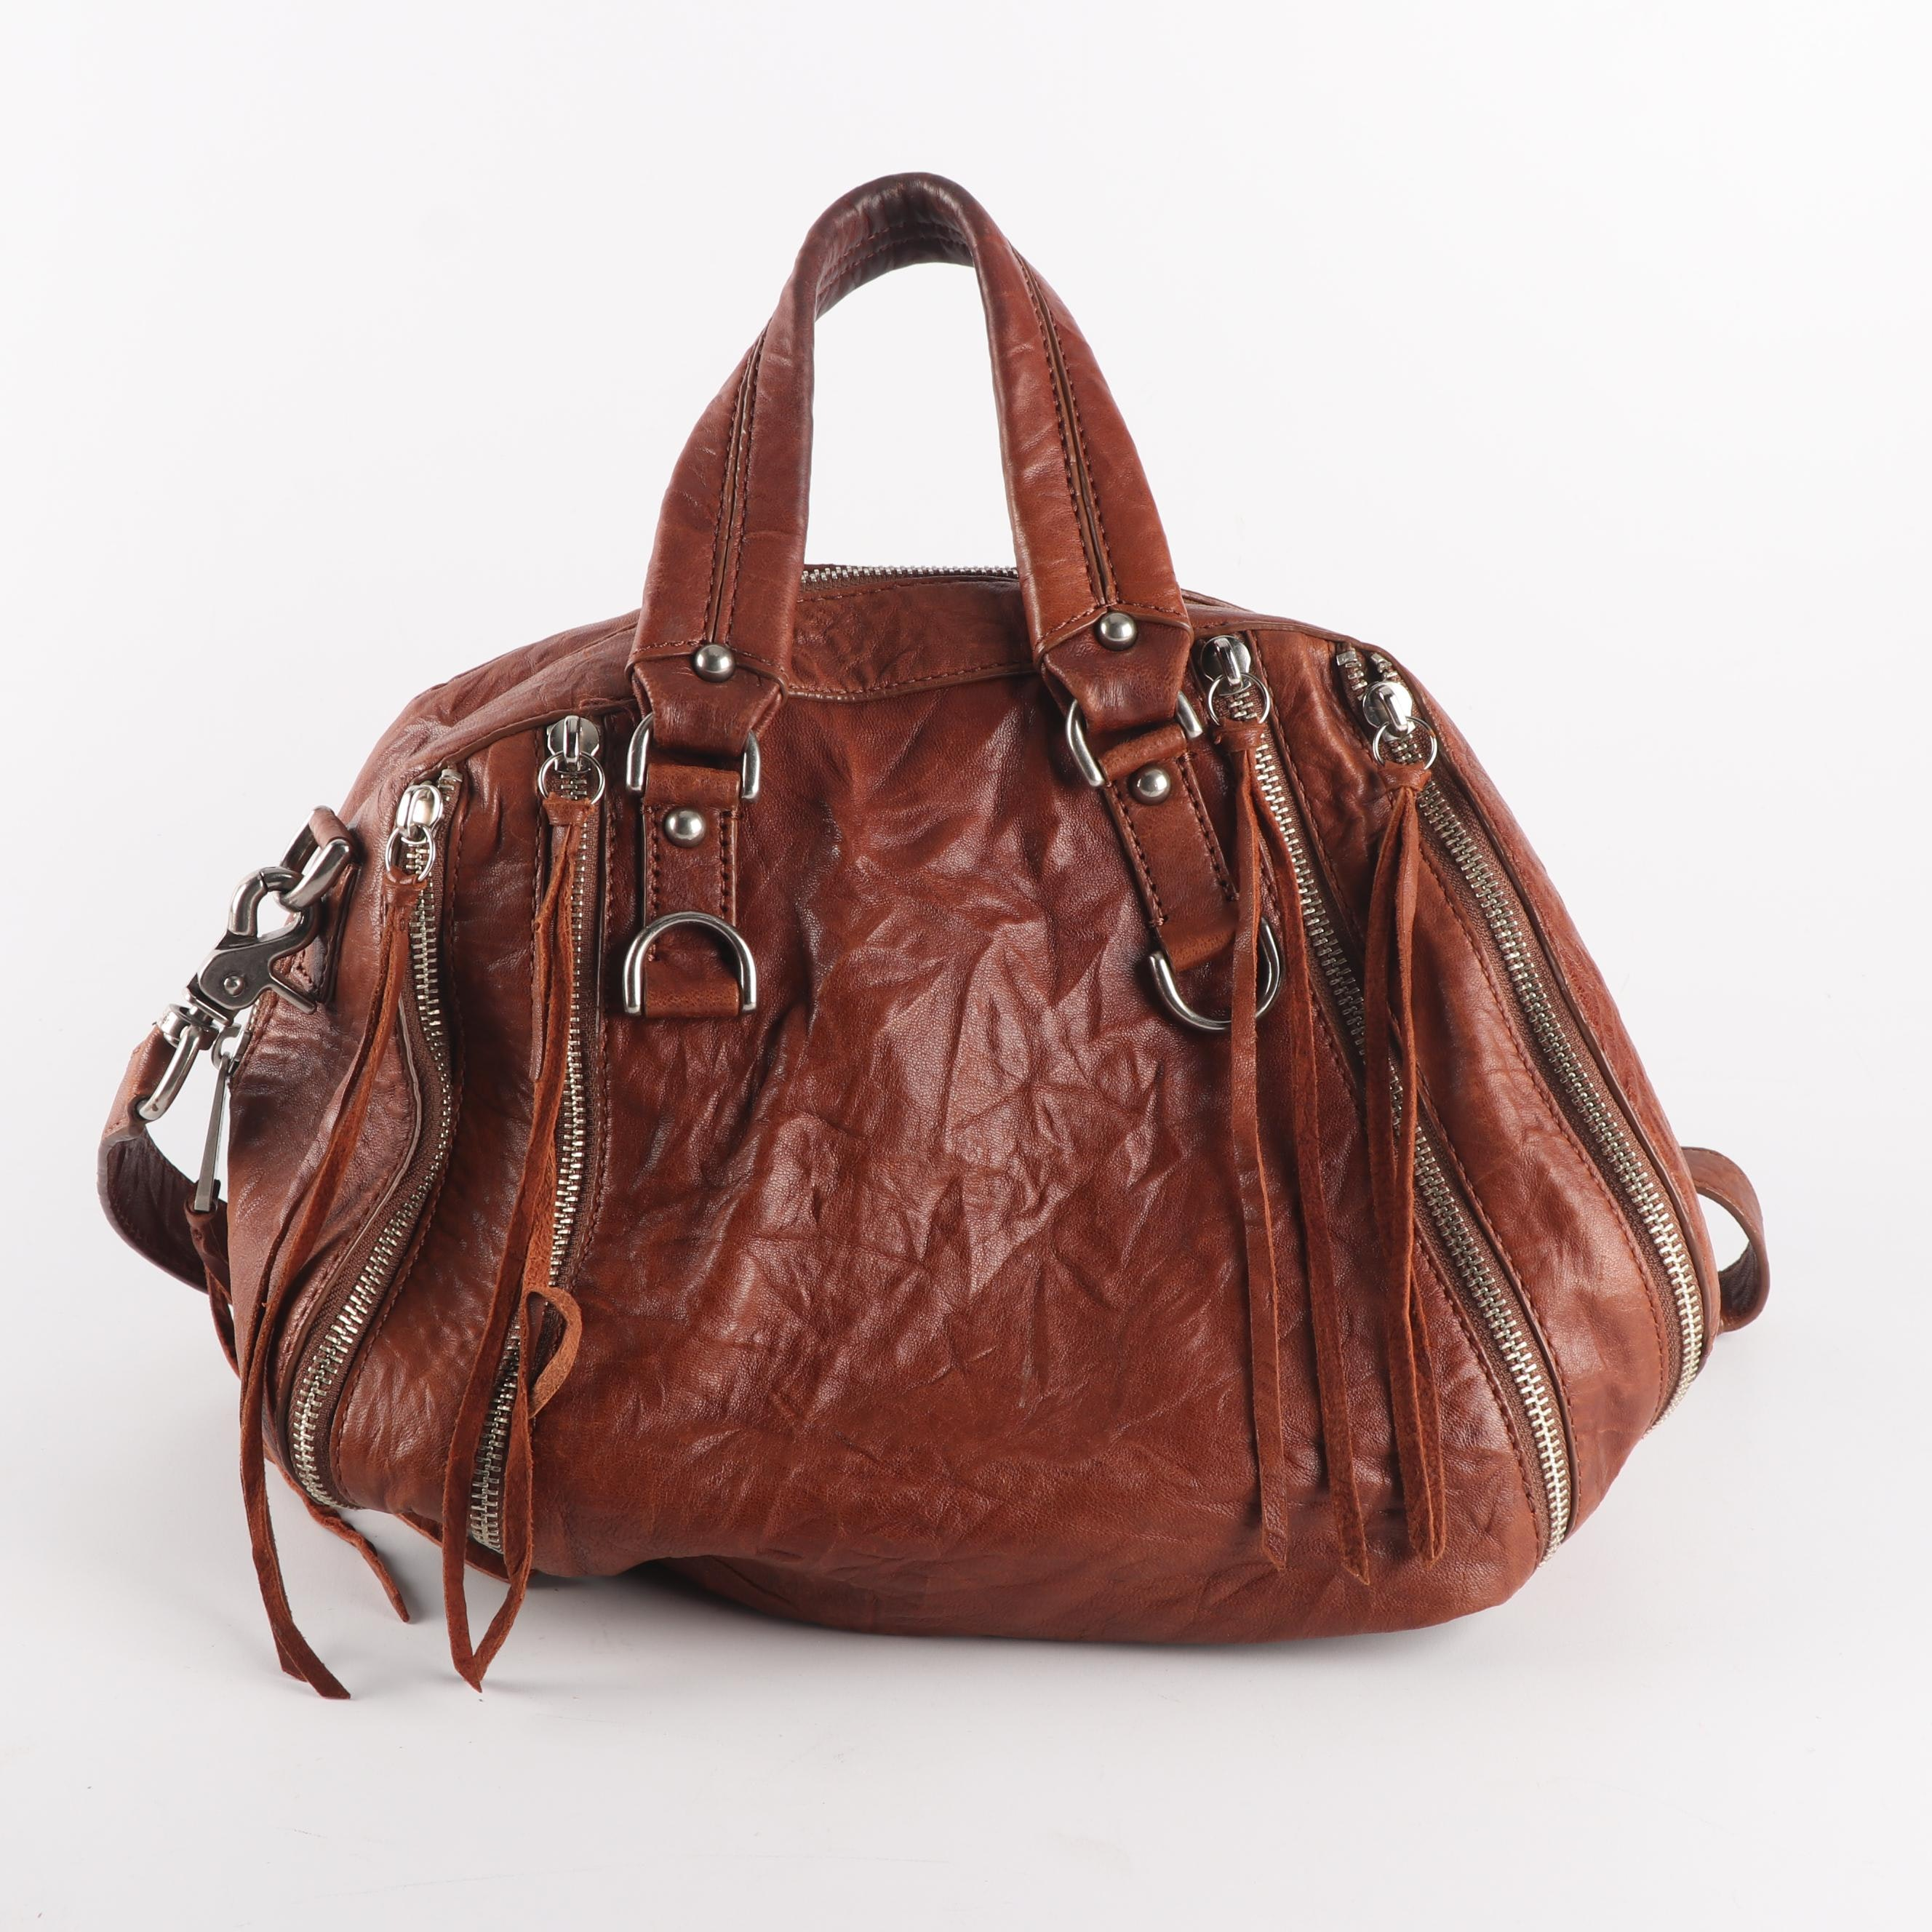 Botkier Distressed Brown Leather Convertible Satchel Bag